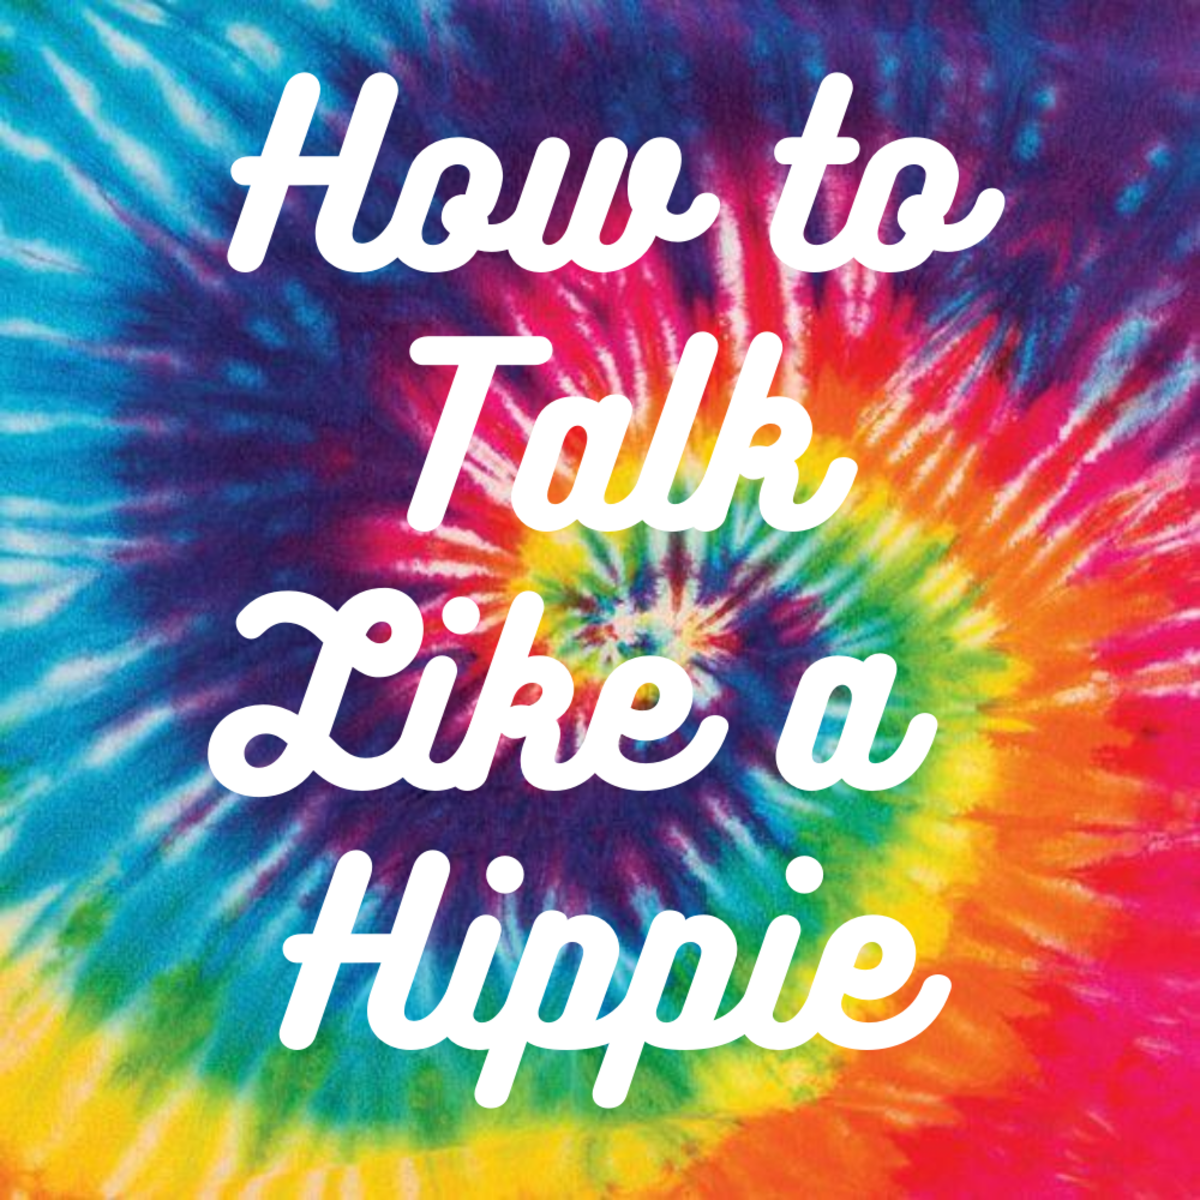 Hippie Words, Quotes, and Phrases (or How to Talk Like a Hippie!)